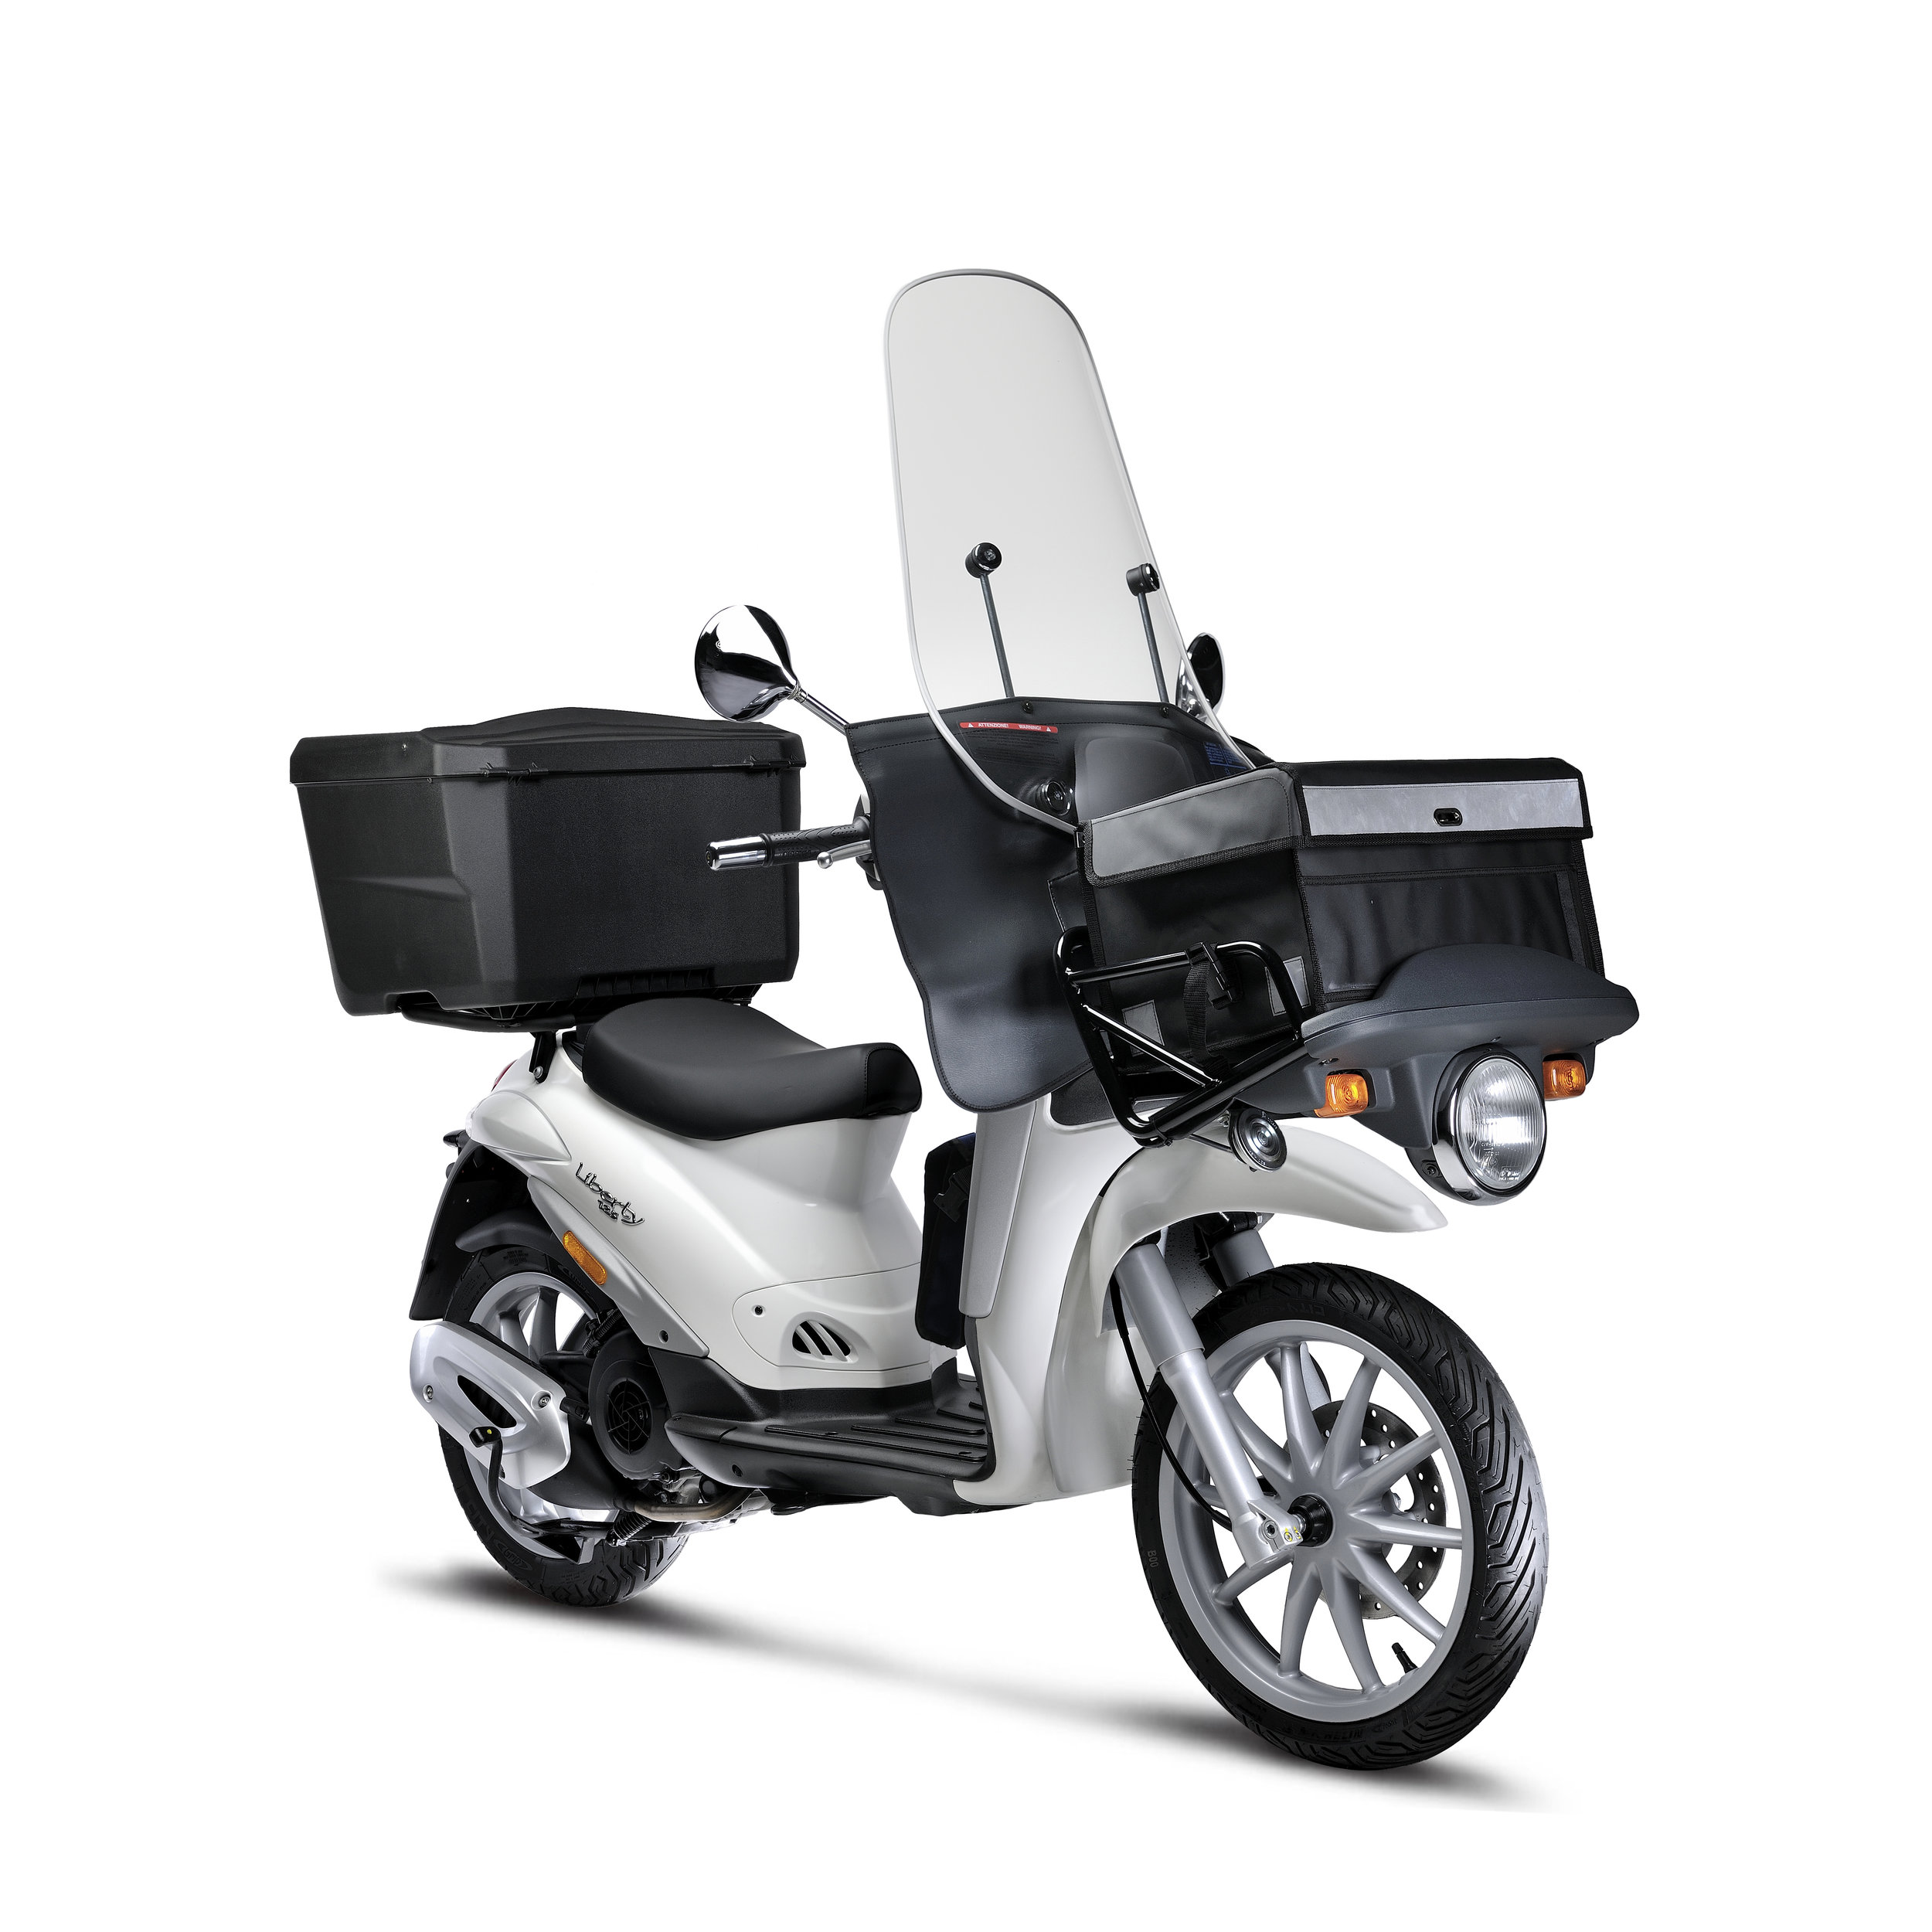 Piaggio Liberty delivery 125 Lateral Dx Double Rack Full Optional.jpg